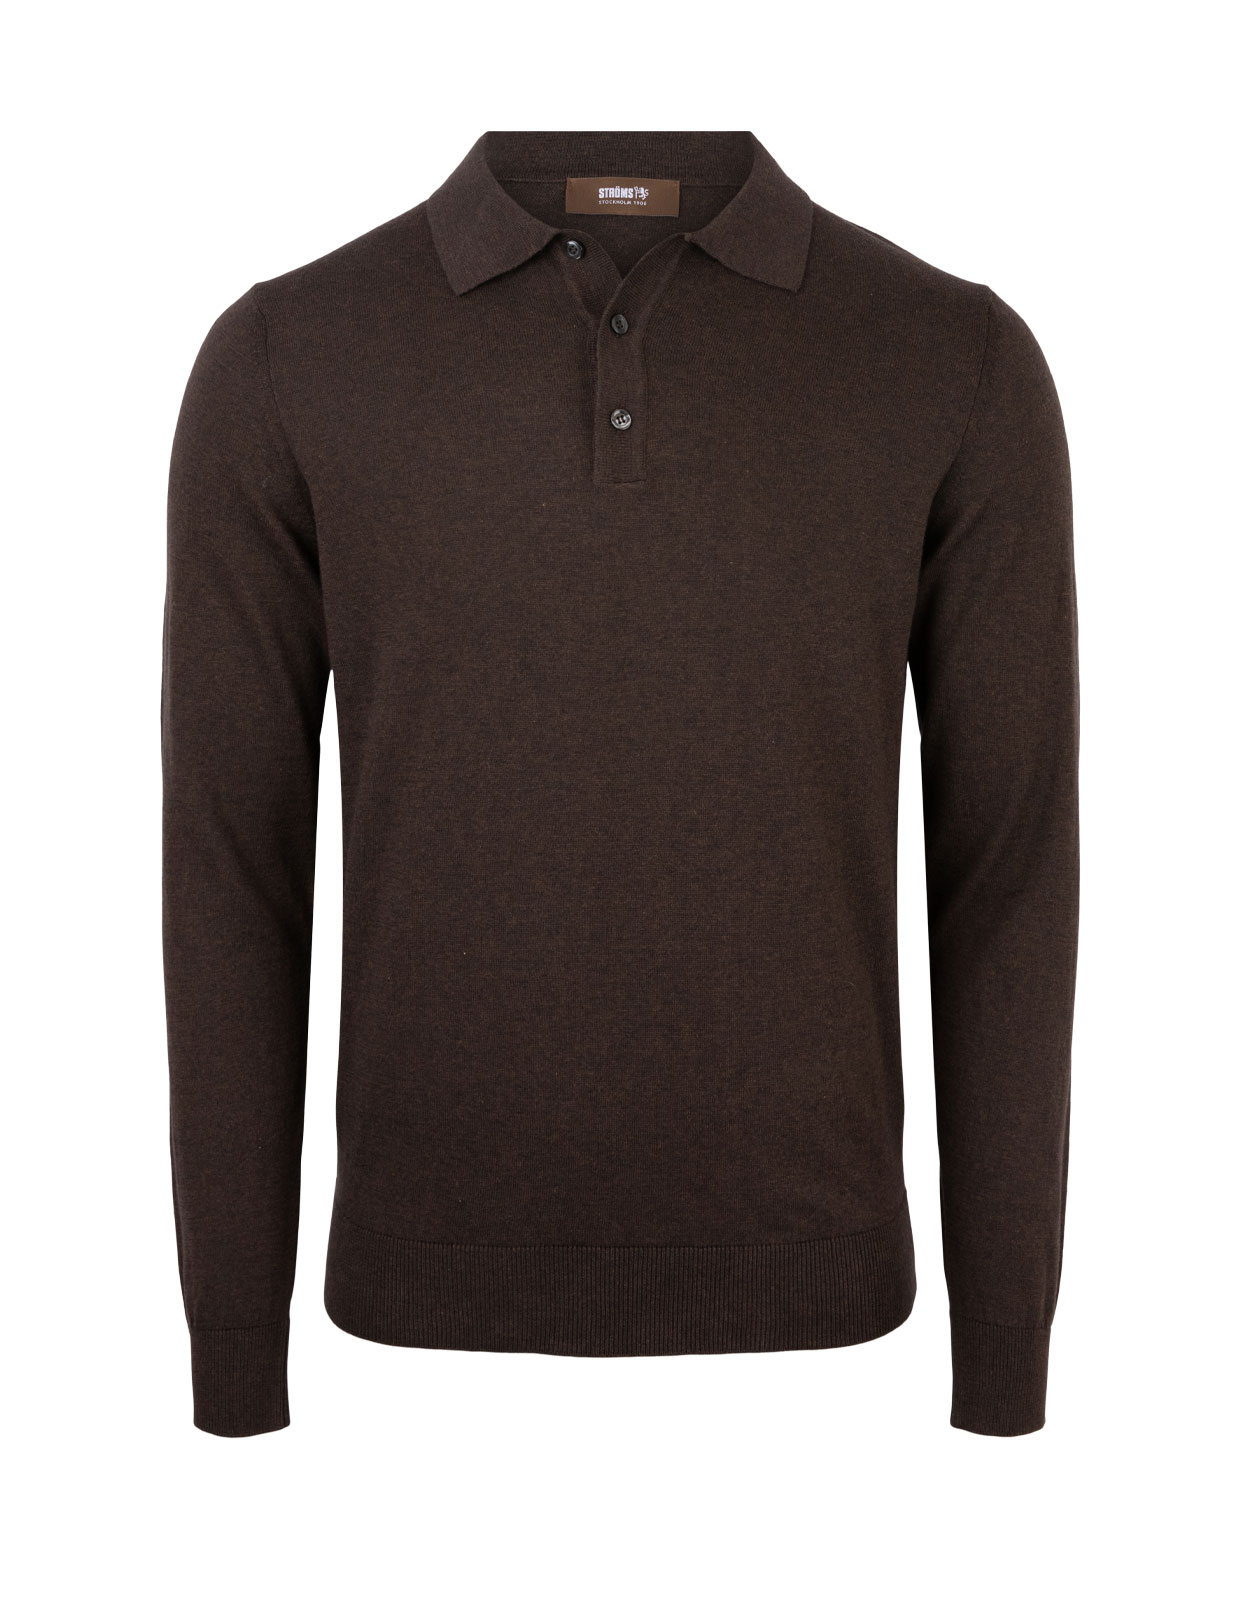 Polo Shirt Long Sleeve Cotton Chocolate